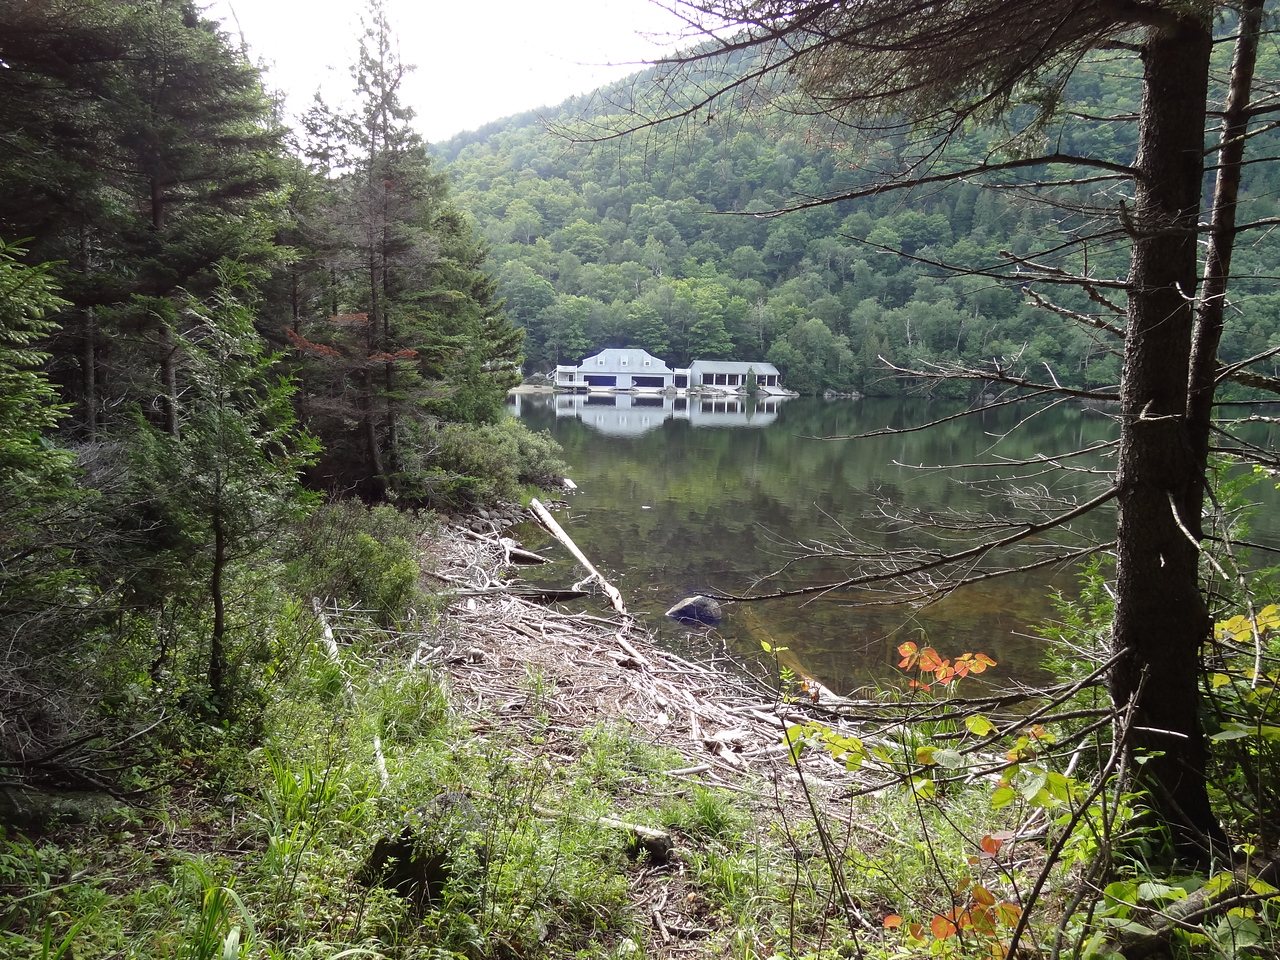 Along the west shore of the lake, you can see the Ausable Club boathouse. There were no fishermen out yet but on the way out, we saw a number of canoists enjoying the remote wilderness.